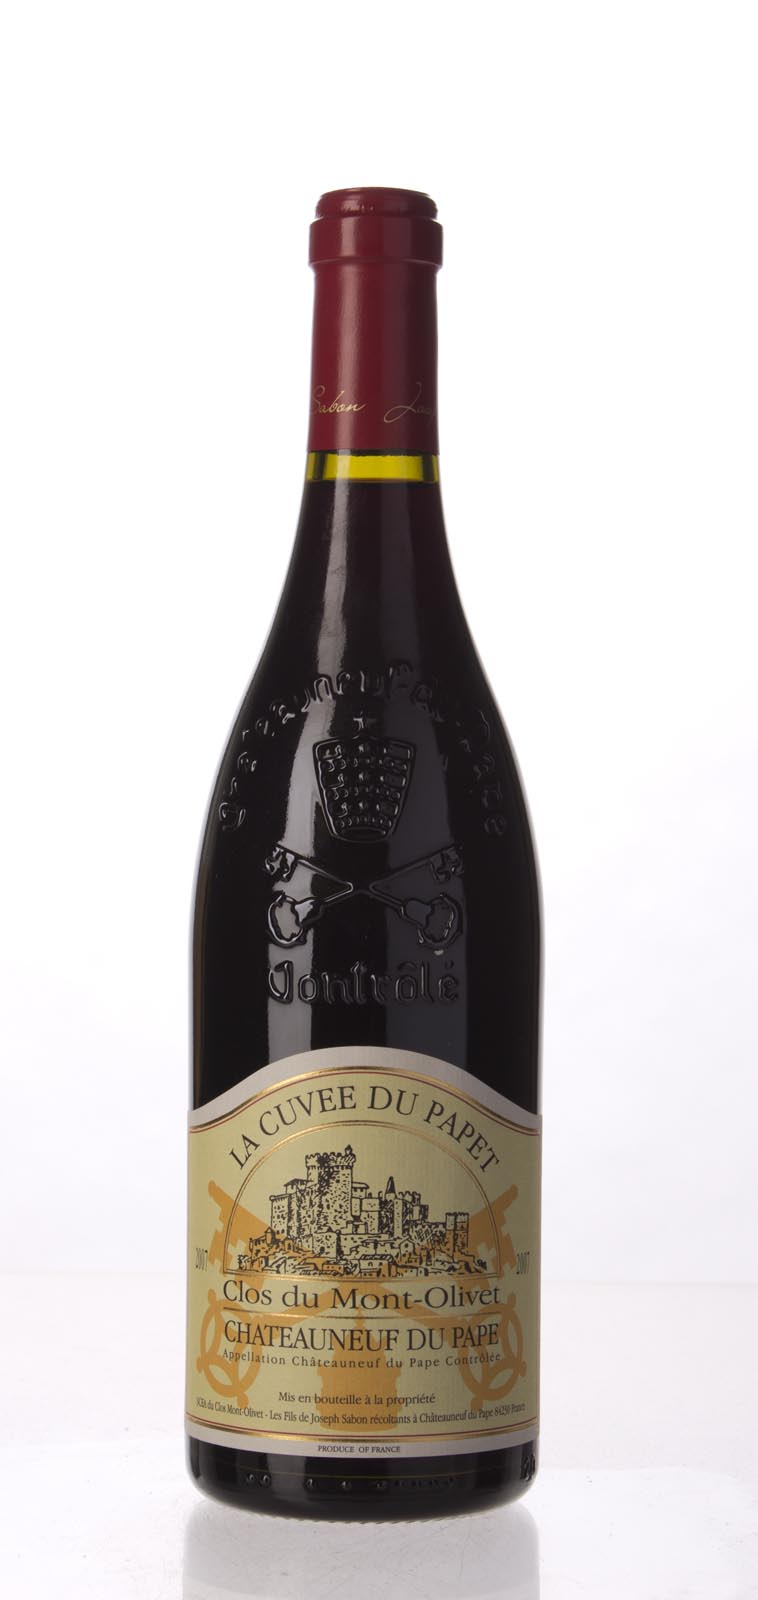 Clos du Mont Olivet Chateauneuf du Pape la Cuvee du Papet 2007, 750mL (WA98+, WS96) from The BPW - Merchants of rare and fine wines.